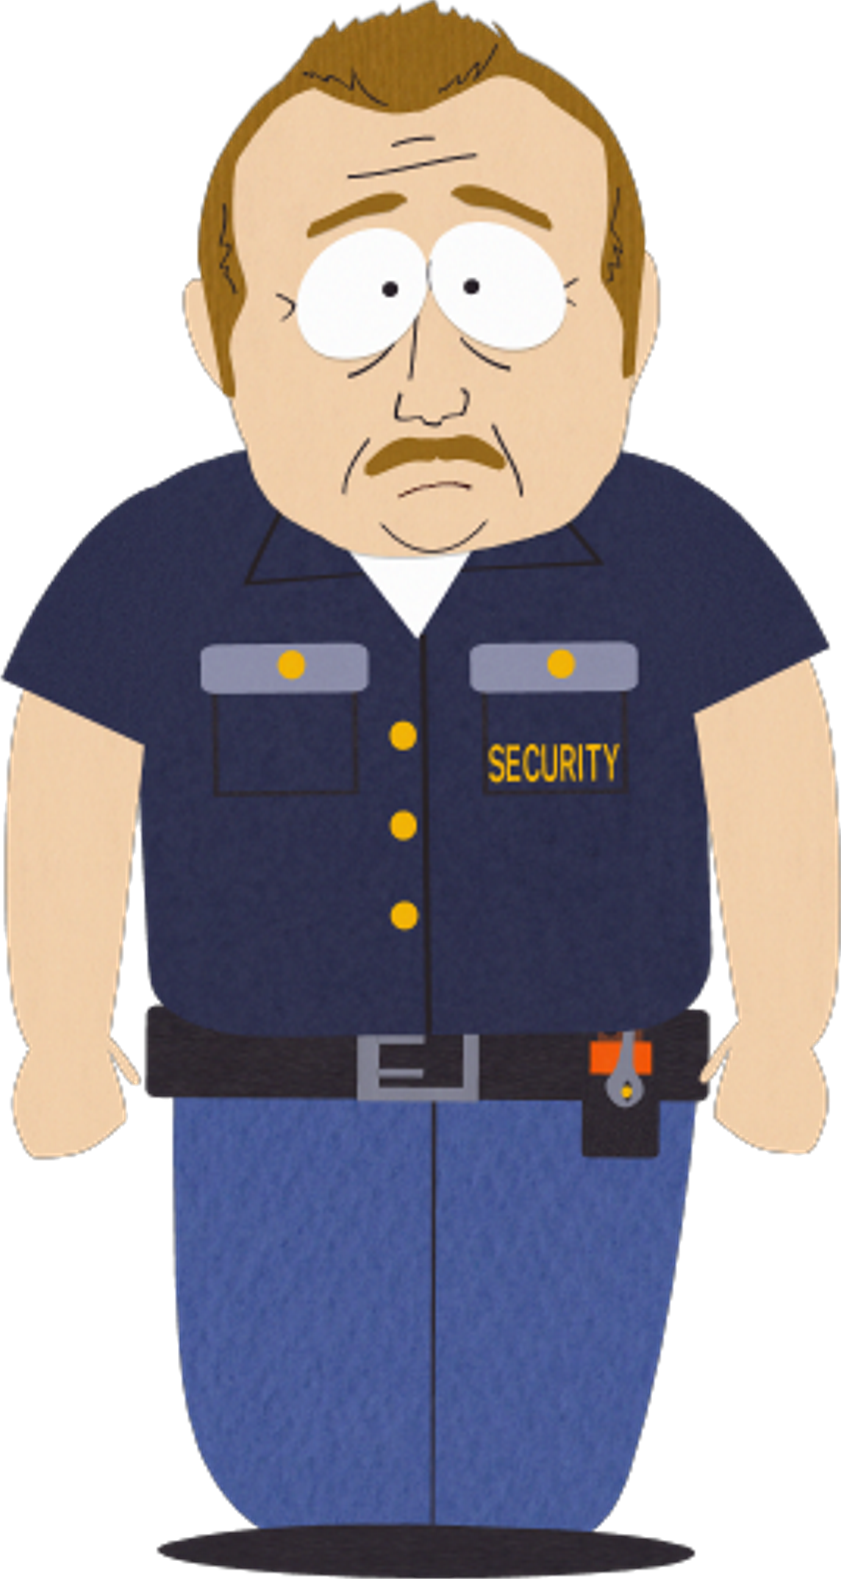 Uniform clipart security guard uniform. Picture library shirt